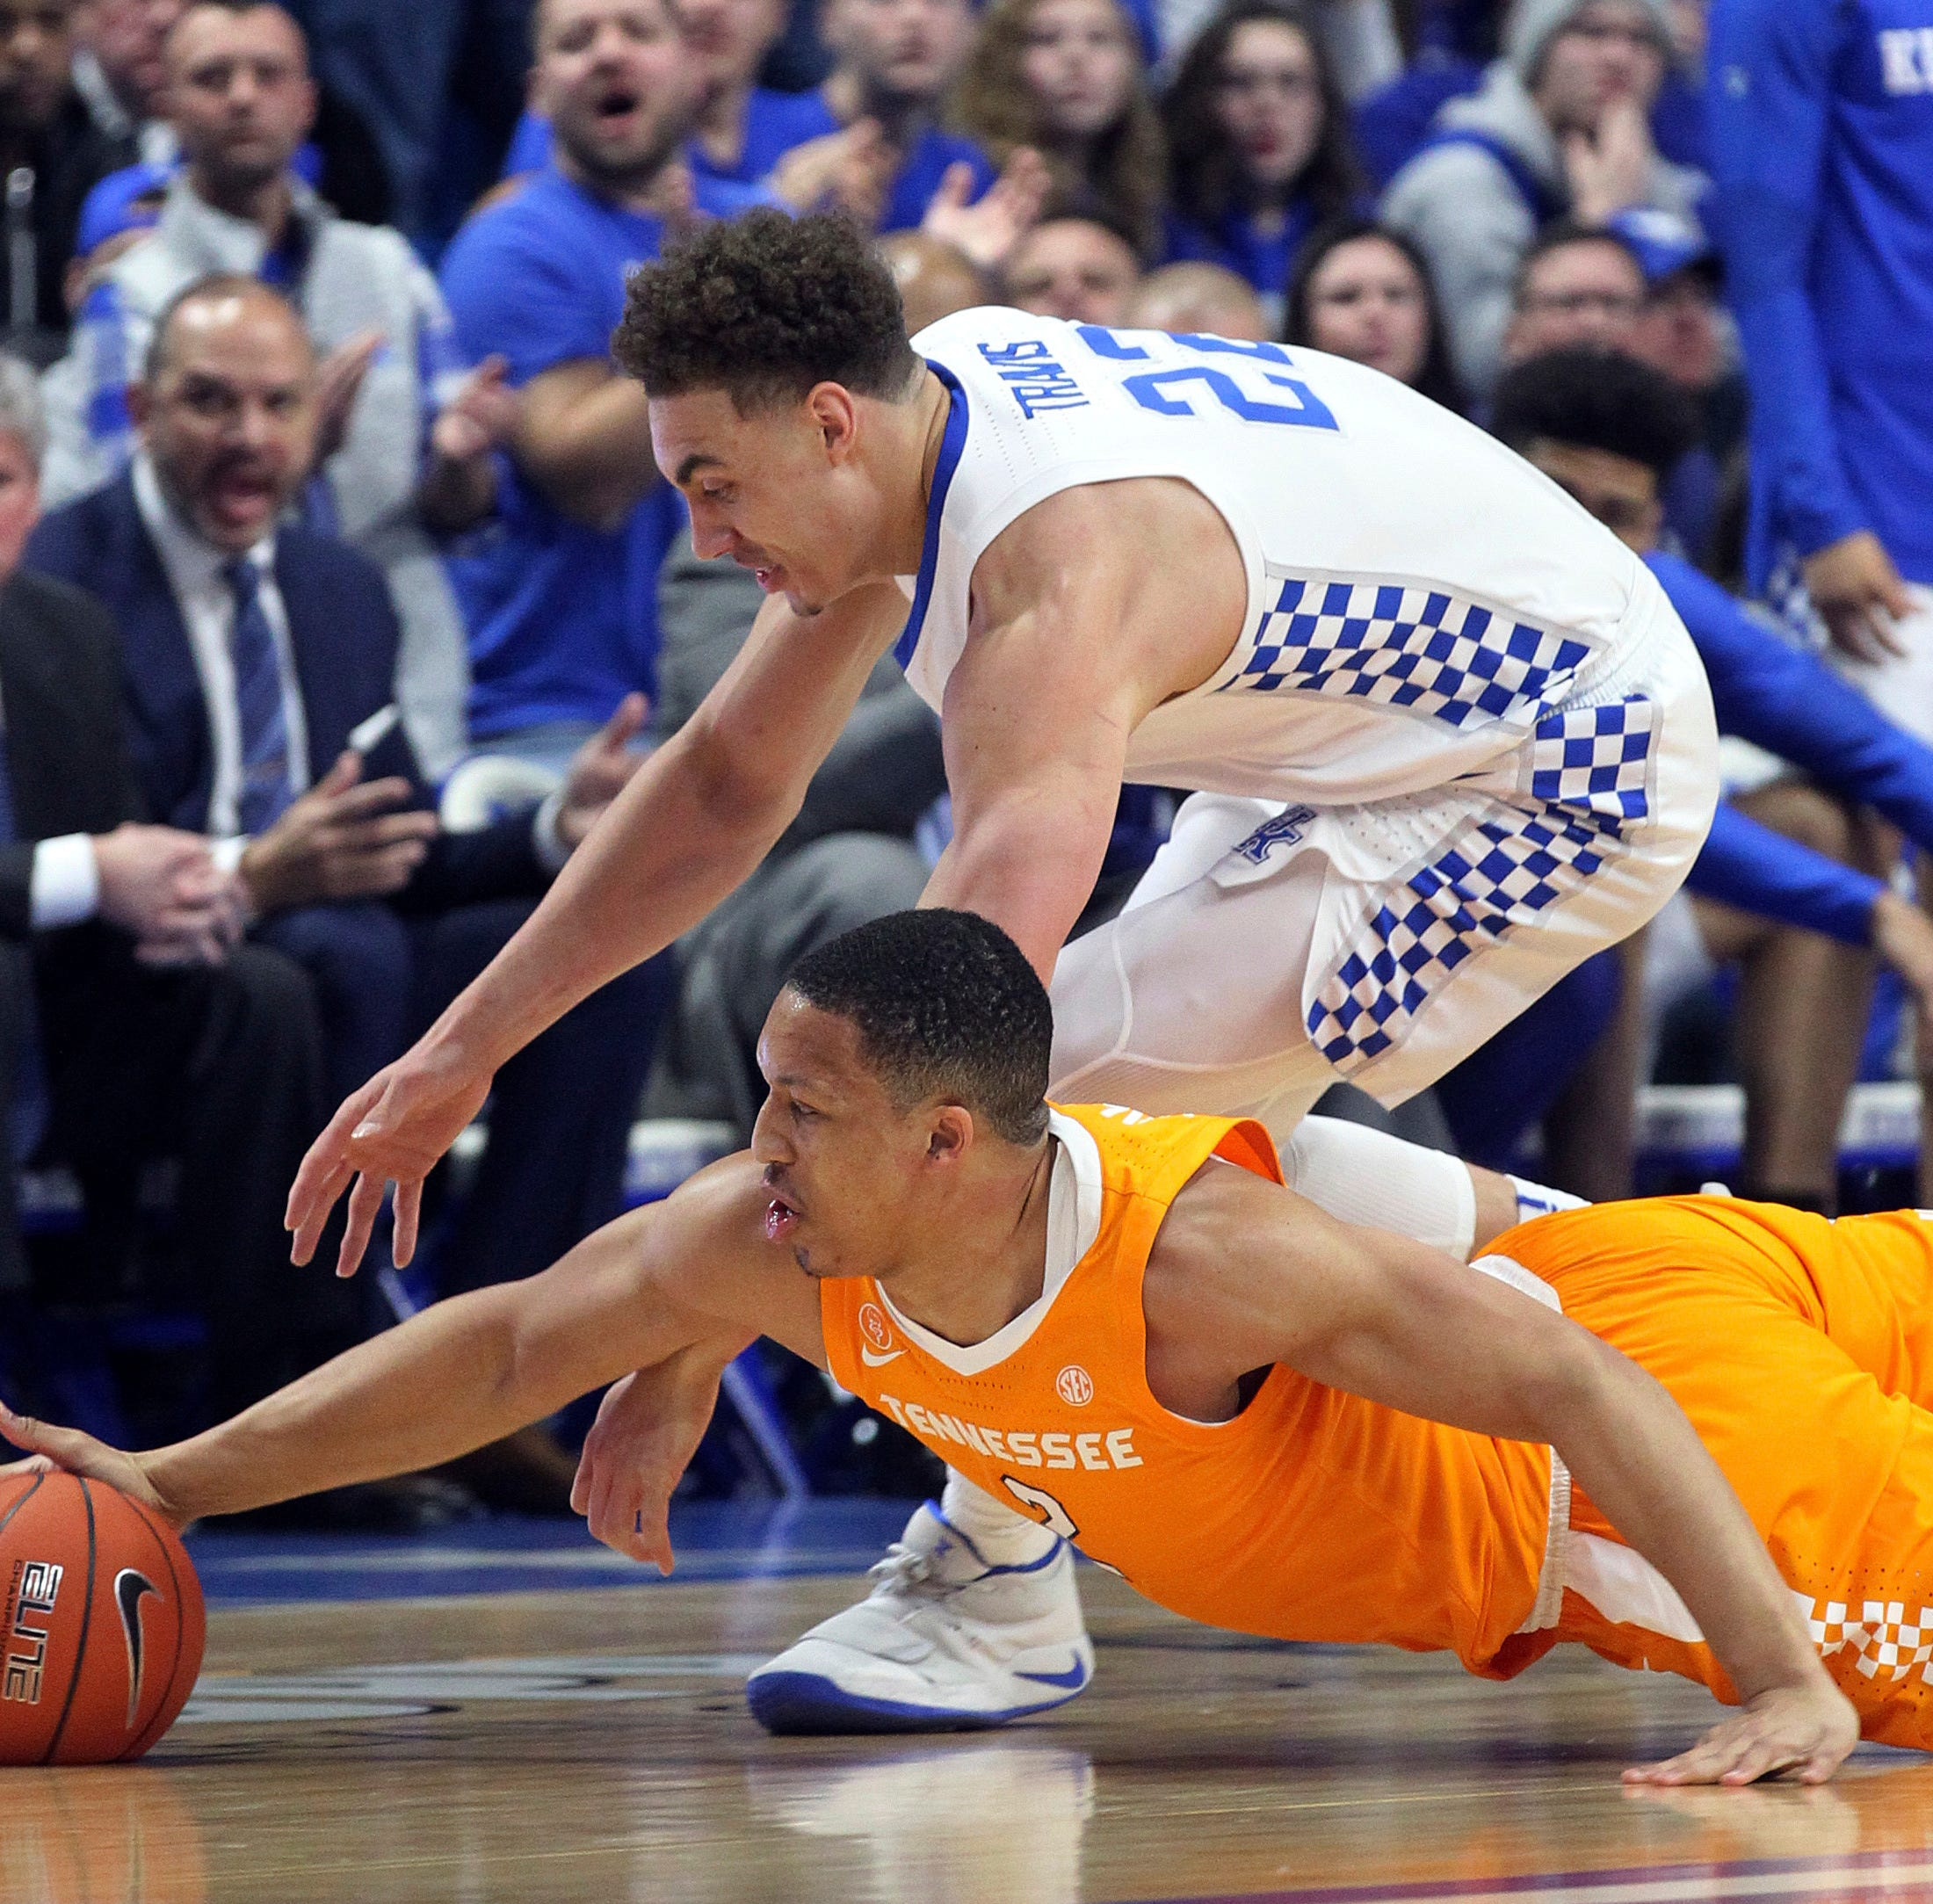 No. 1 UT Vols basketball crushed by No. 5 Kentucky to end 19-game winning streak